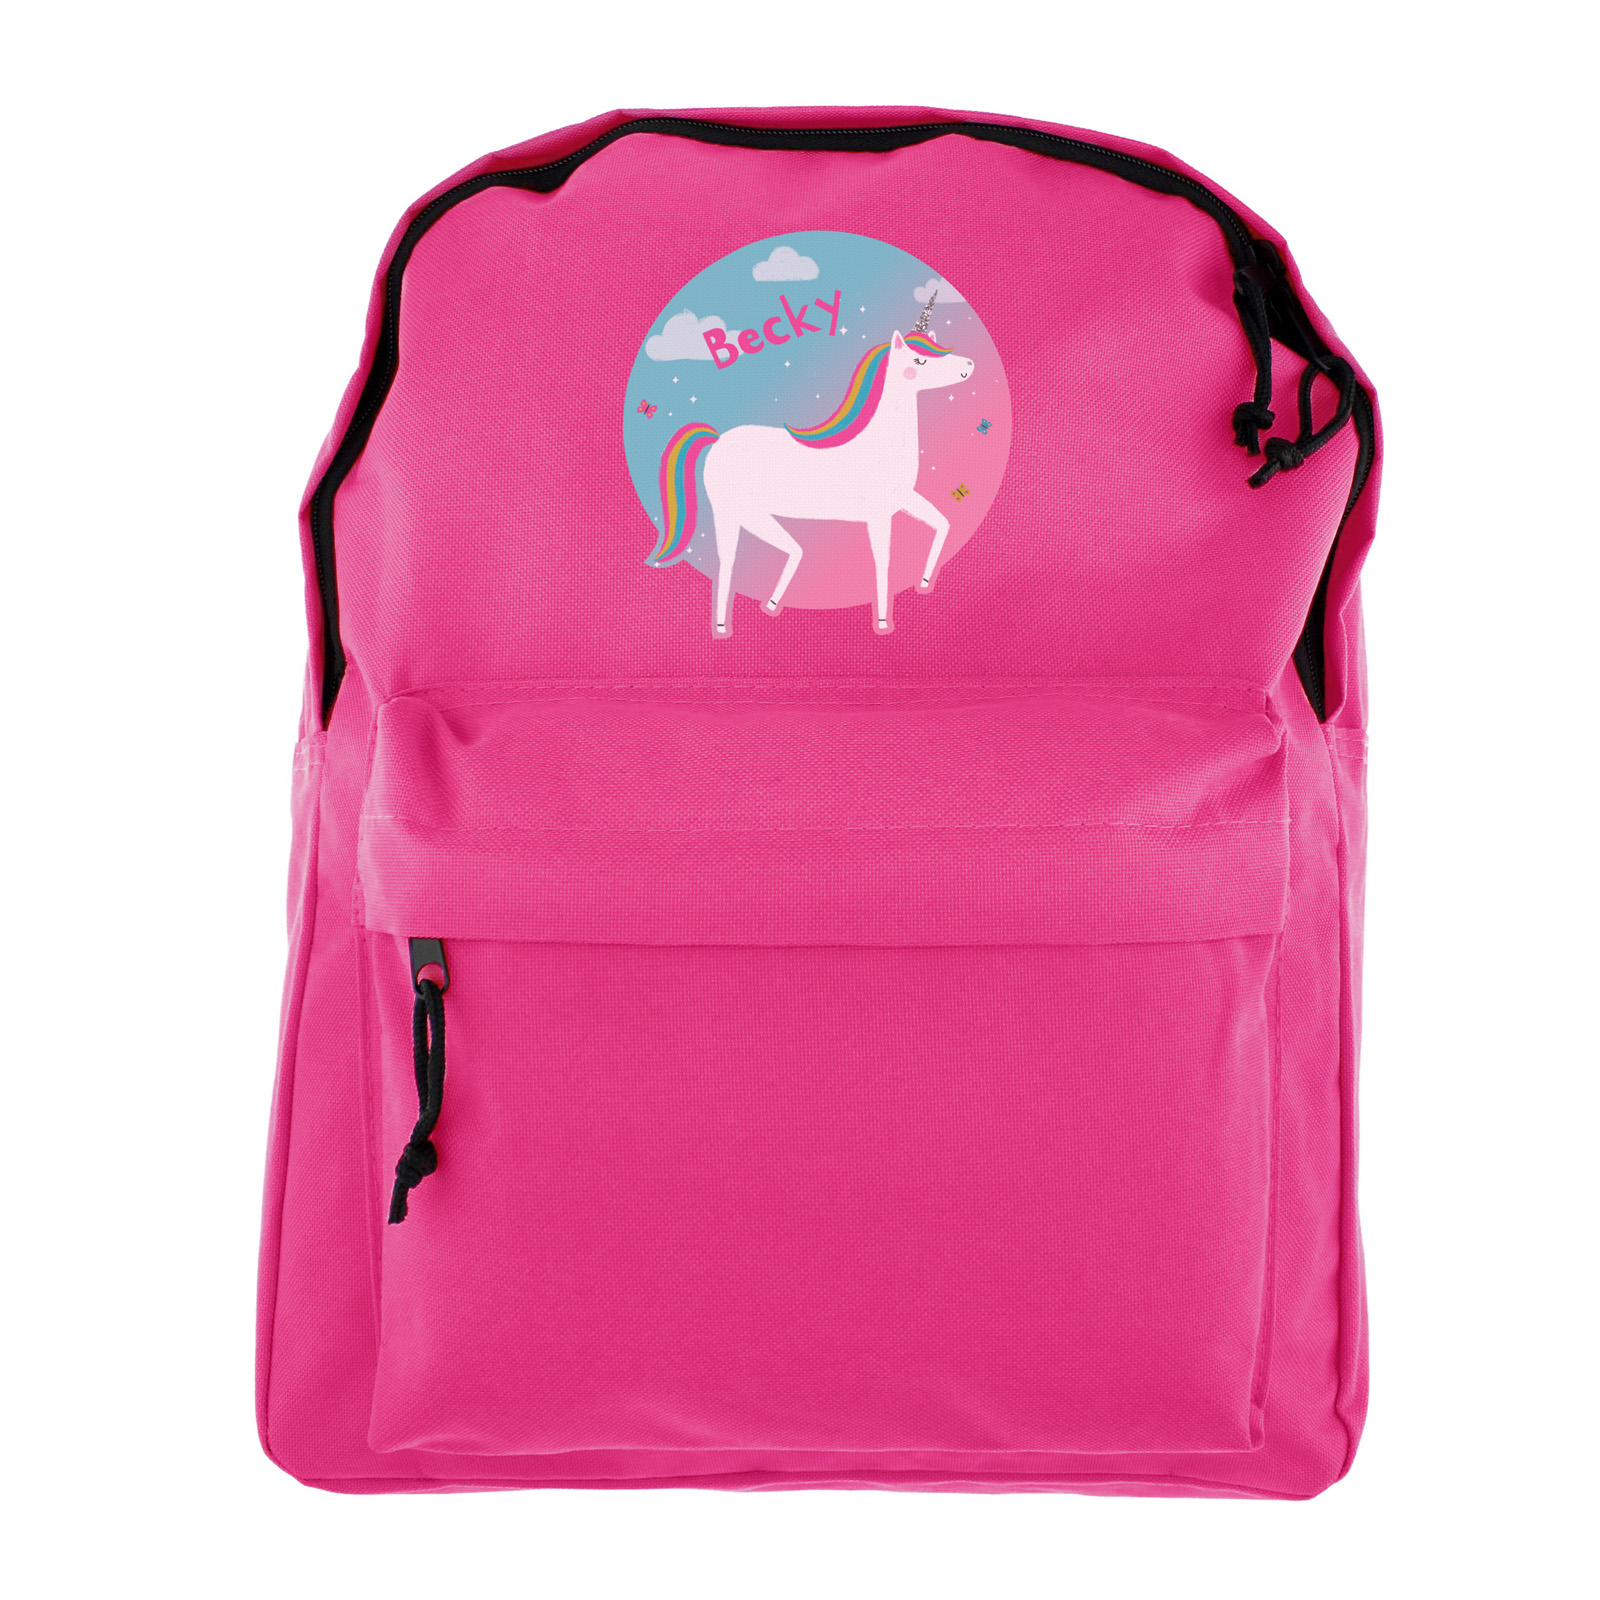 Personalised Backpack - Pink Unicorn